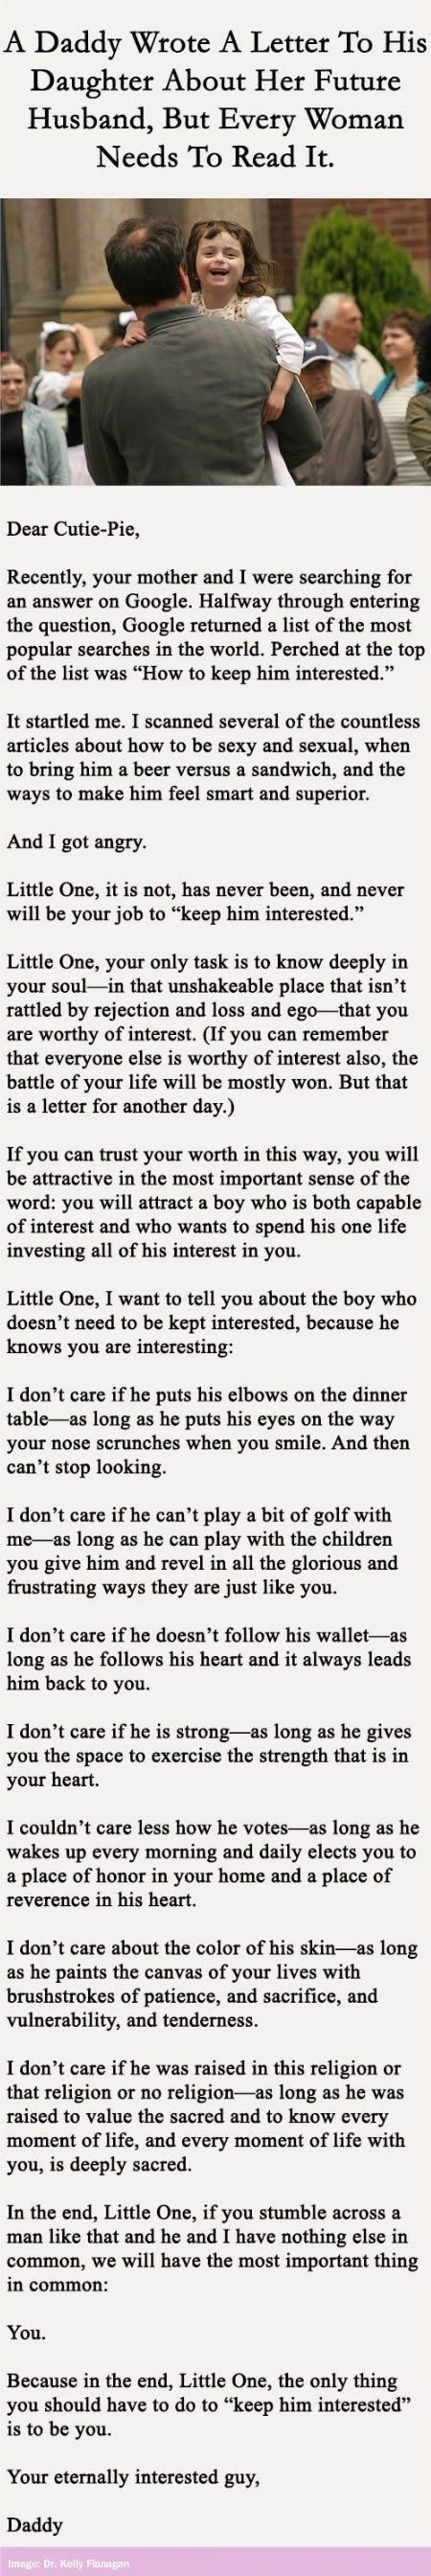 A Touching Letter Wrote By A Daddy To His Daughter About Her Future Husband.